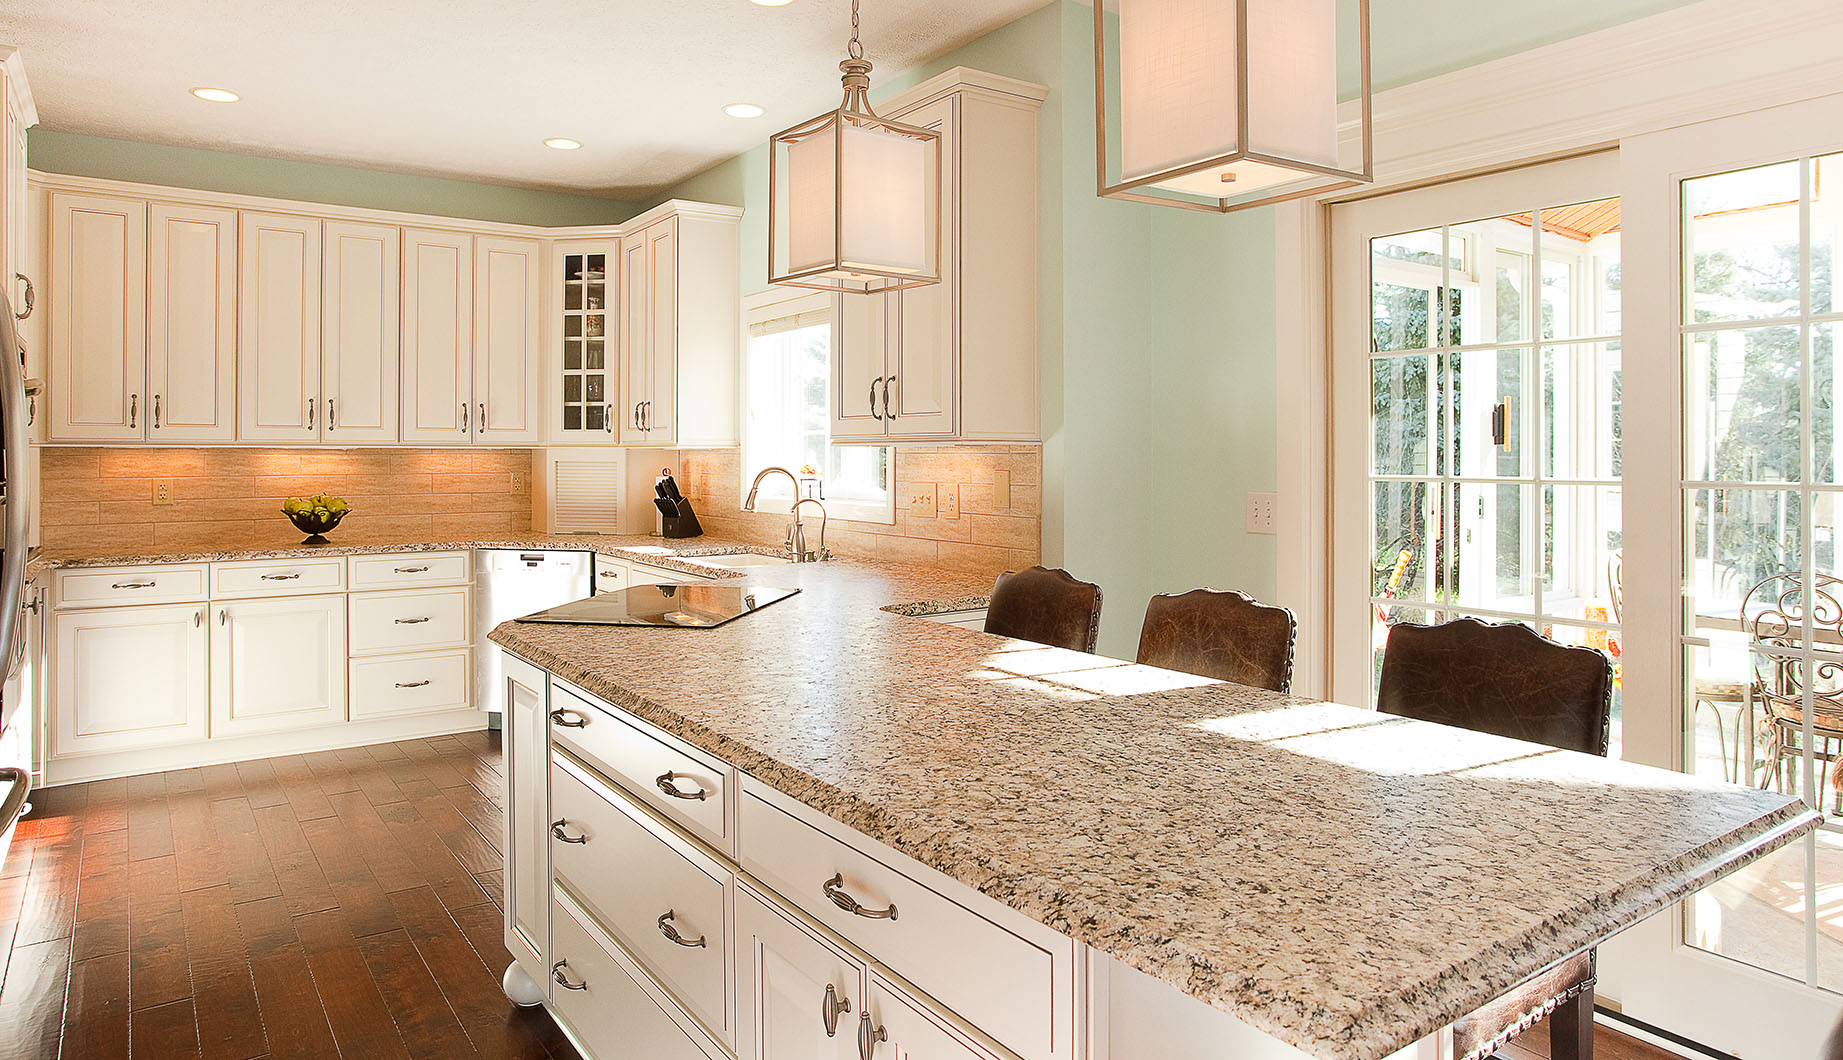 Creating New Cabinet Space In Kitchen Remodel Current Publishing